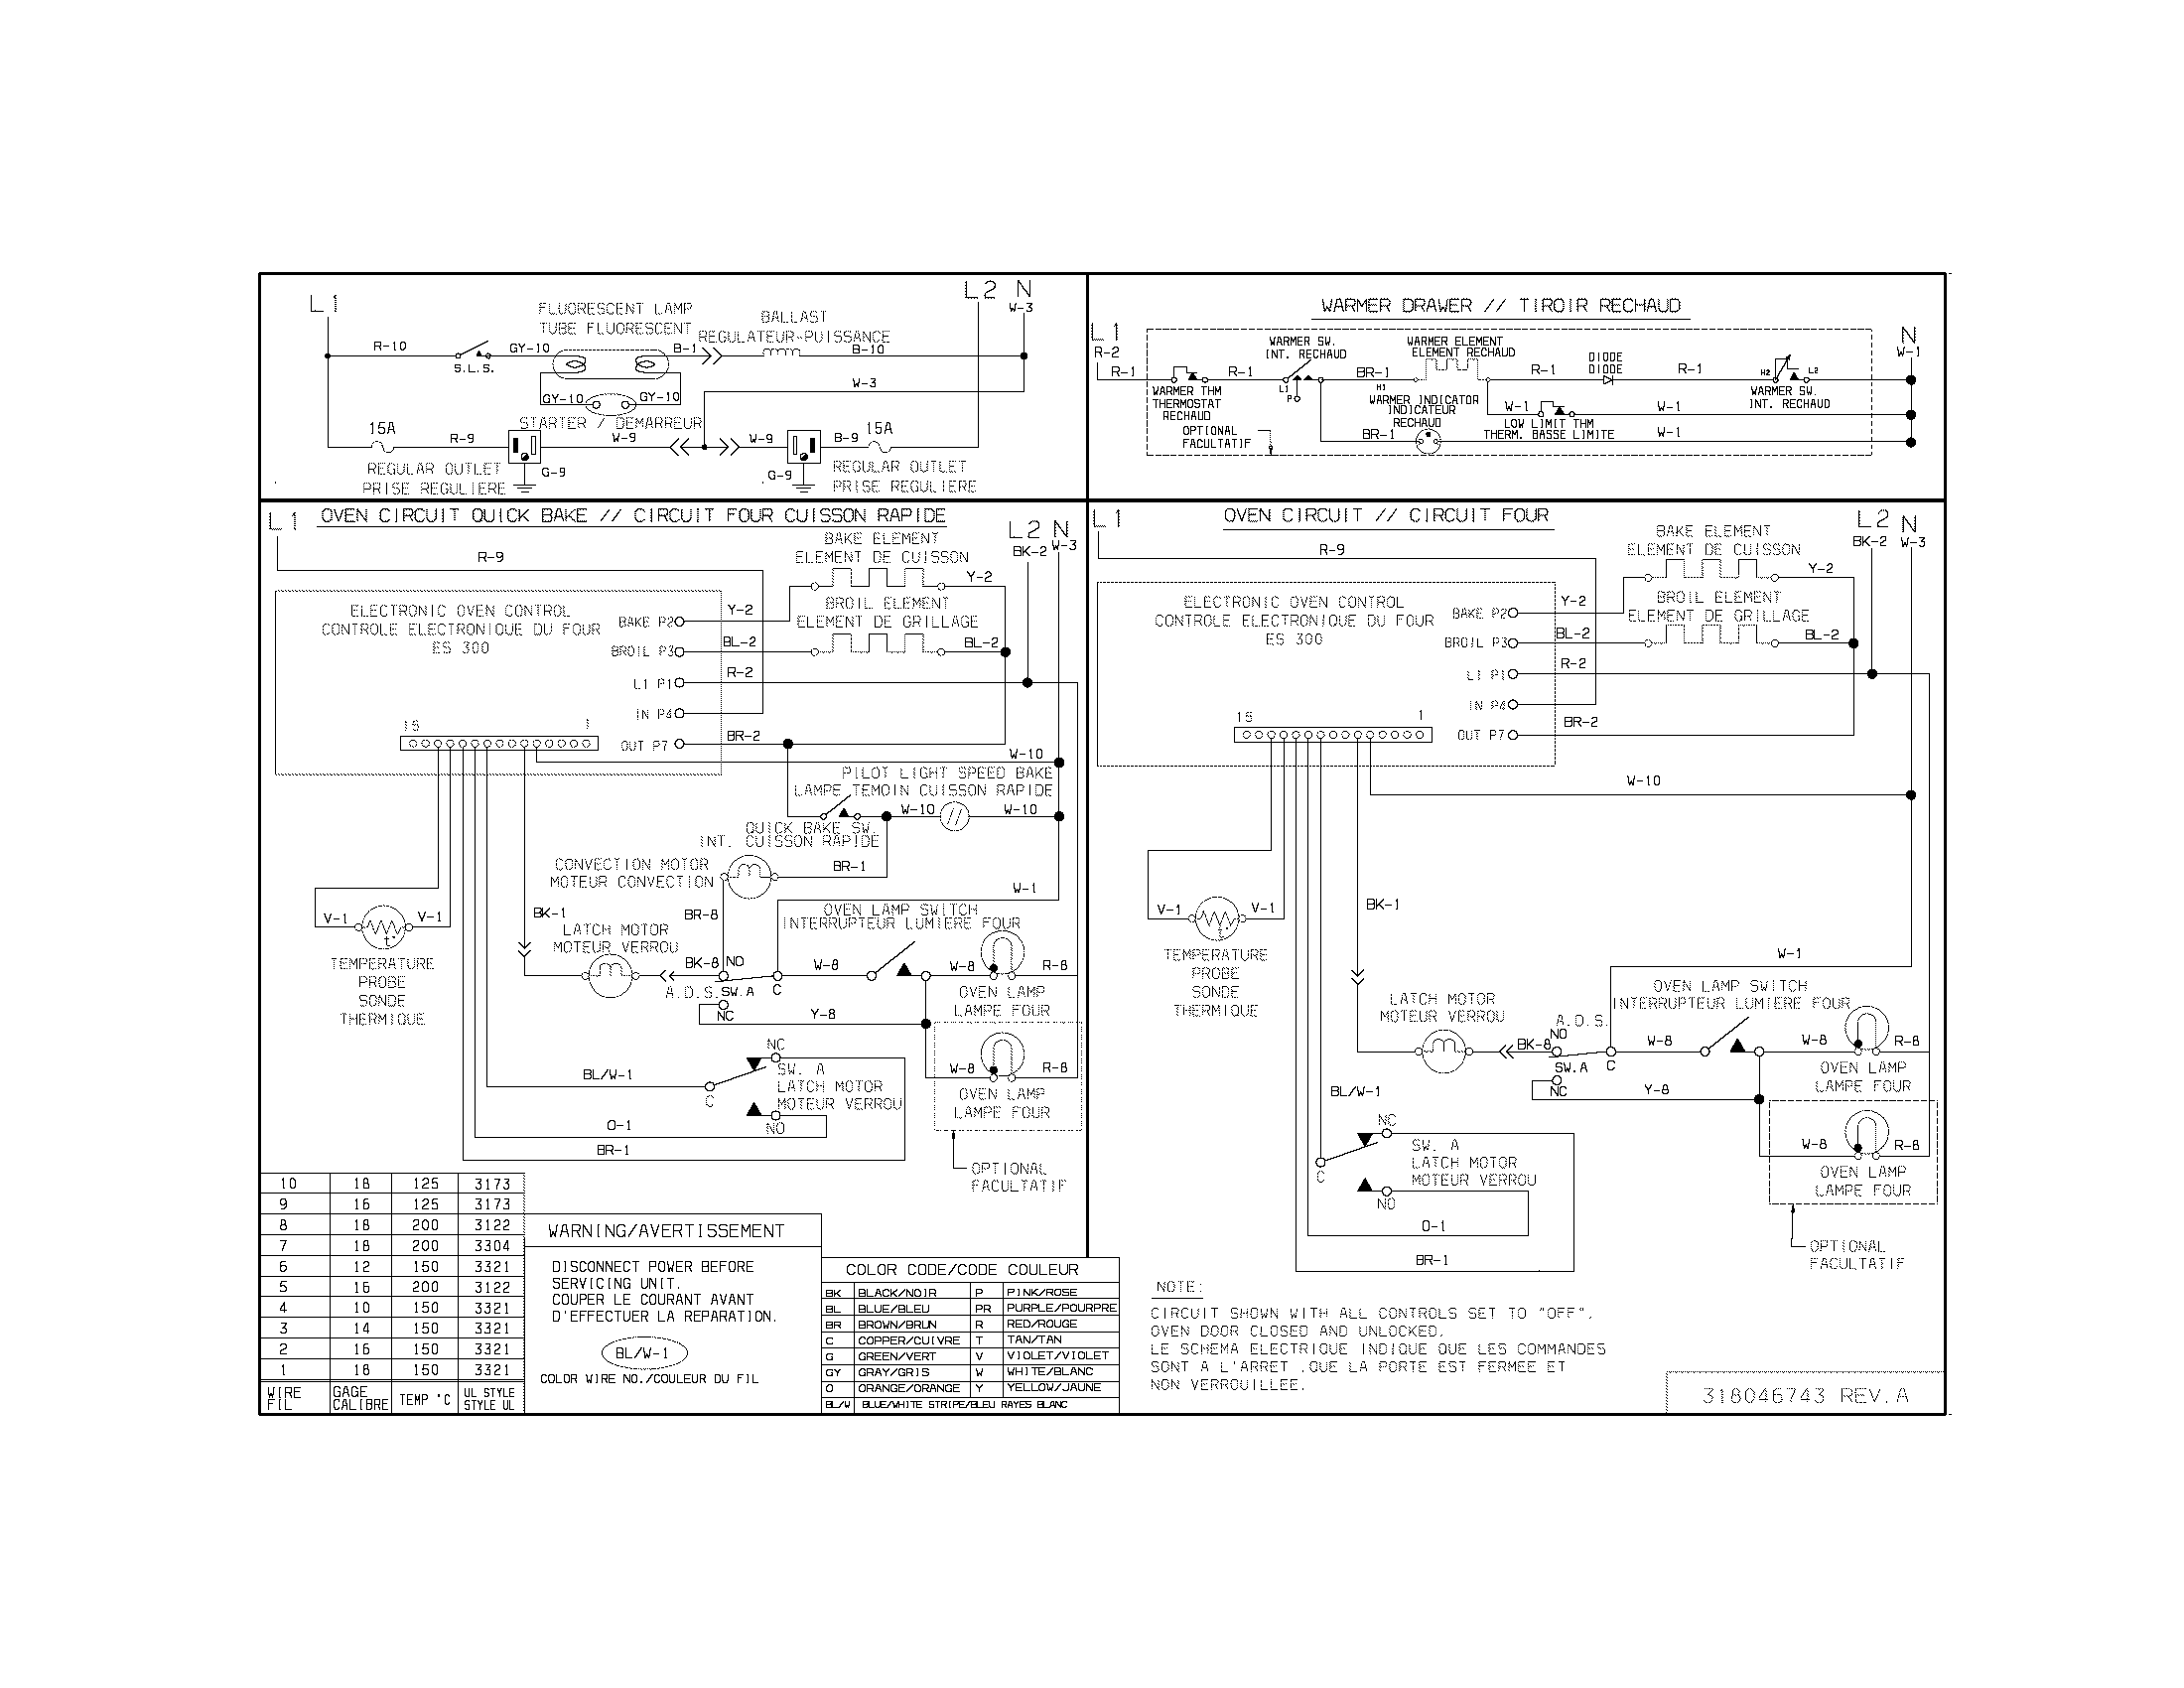 Diagram Rv Appliance Wiring Diagram Full Version Hd Quality Wiring Diagram Diagramrt Hosteria87 It